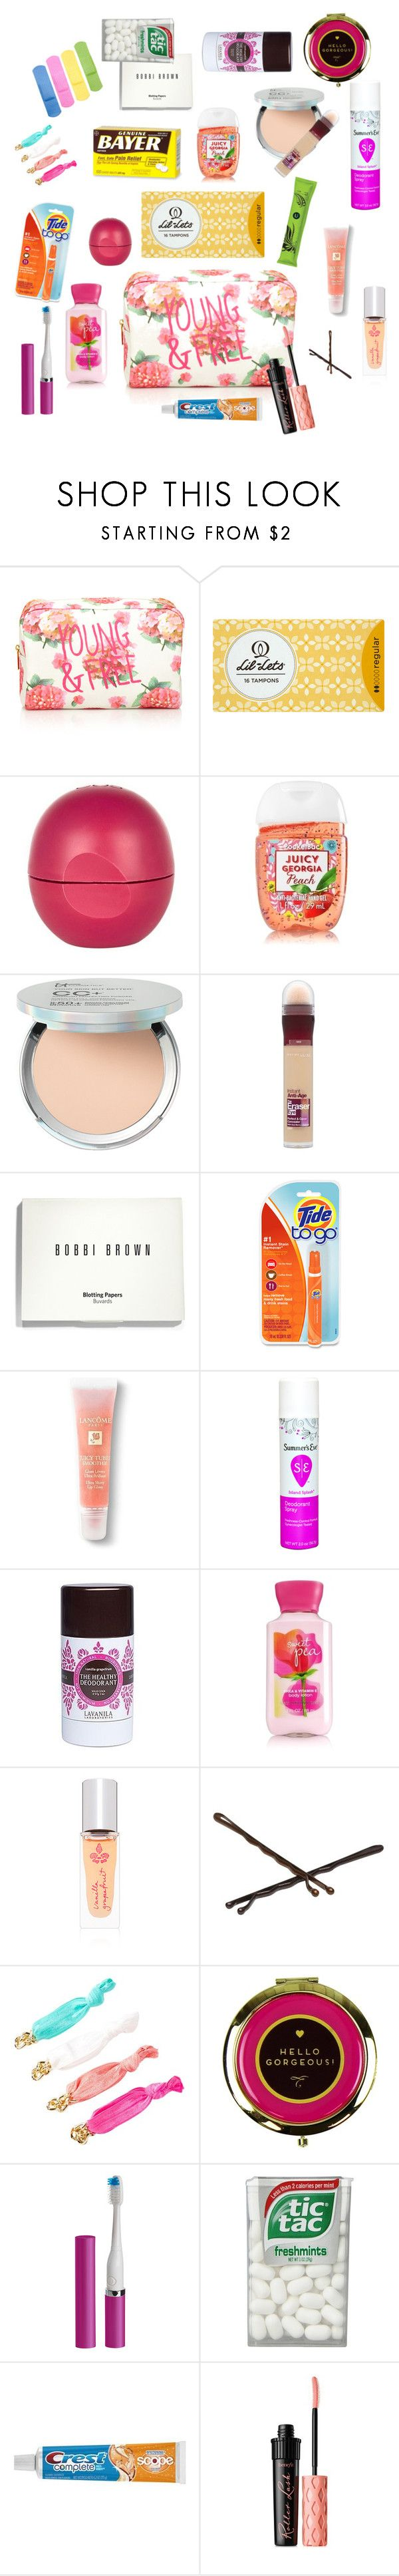 """Girl's Emergency Kit for School"" by shelbiedawn ❤ liked on Polyvore featuring beauty, Forever 21, River Island, It Cosmetics, Maybelline, Bobbi Brown Cosmetics, Lancôme, Lavanila, Goody and Violight"